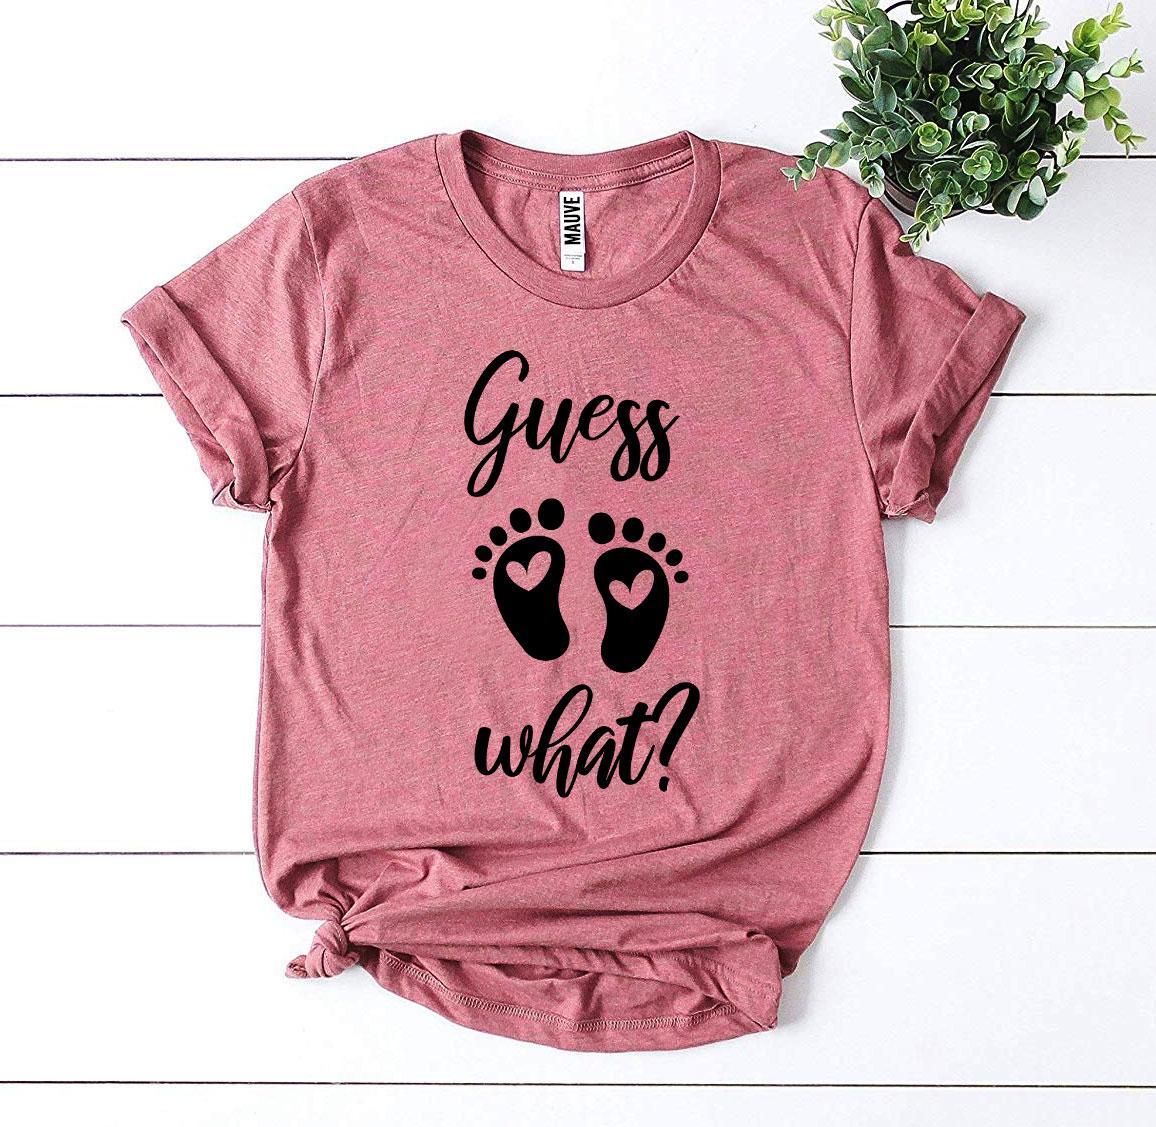 Guess What? T-shirt